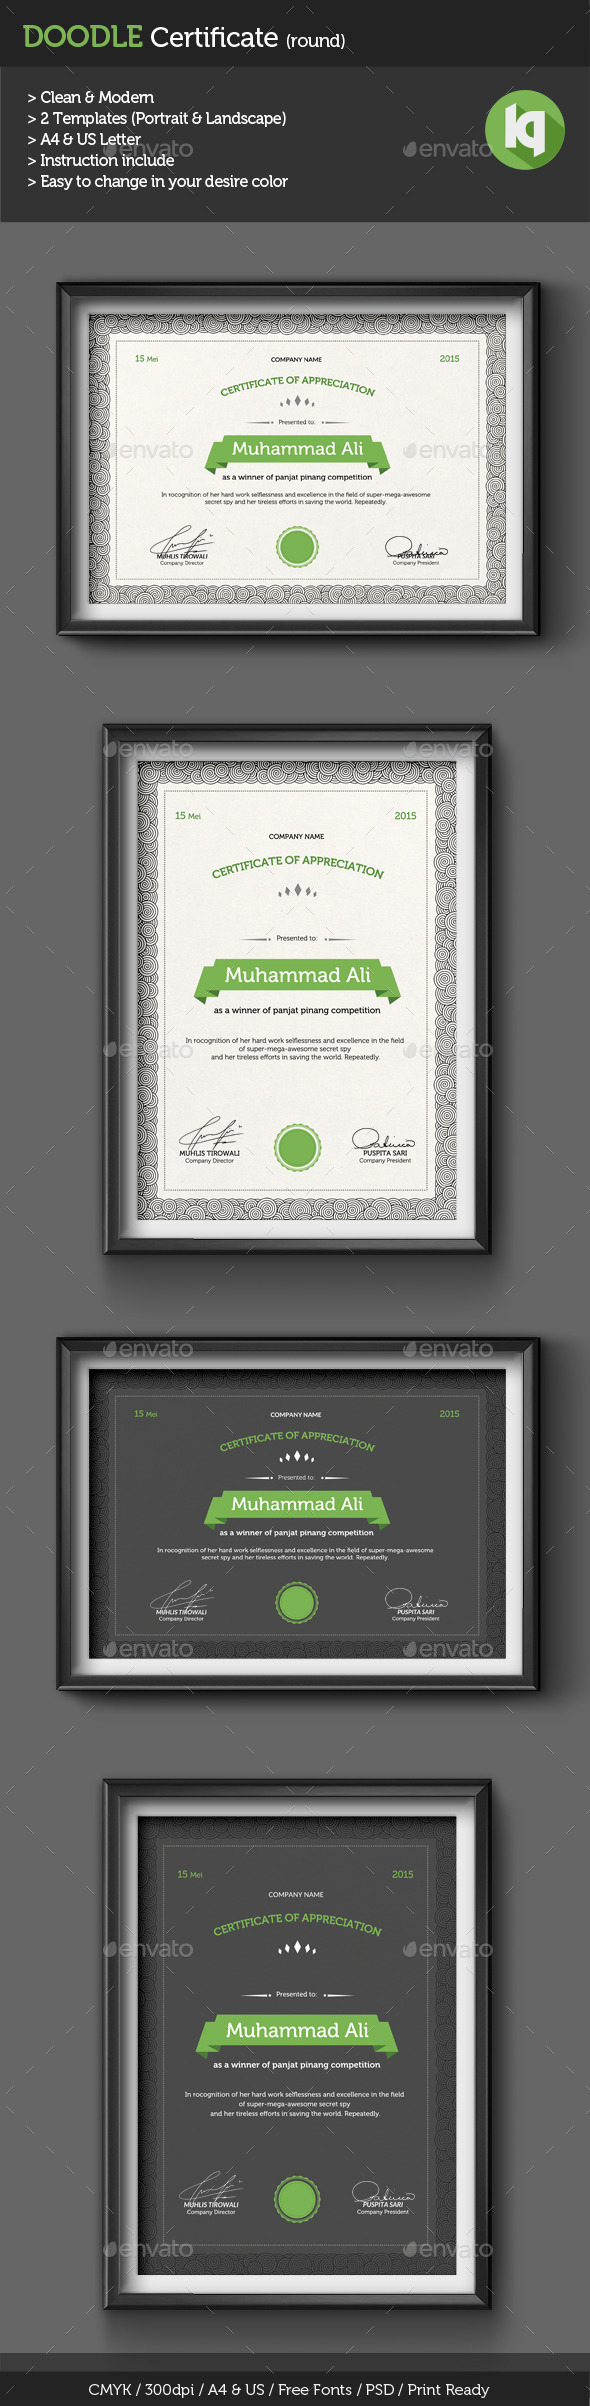 Doodle certificate a4 us template psd download here http doodle certificate a4 us template psd download here httpgraphicriver yadclub Images